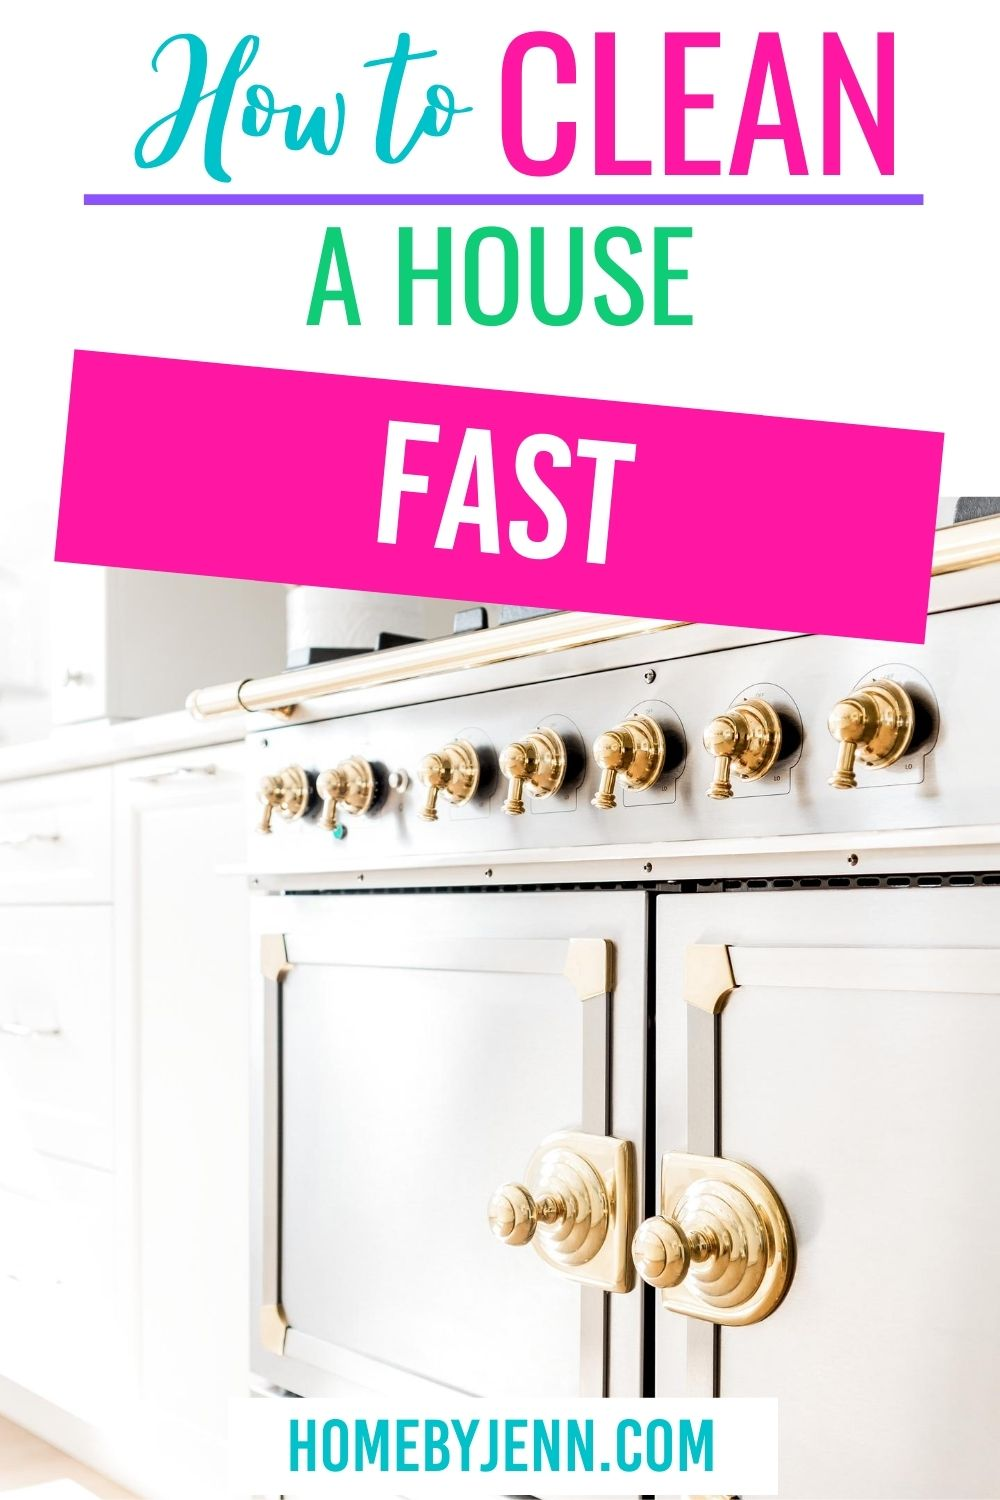 Learn how to clean your house fast with these speed cleaning tips. #cleanhome #cleaningtips #cleaningtipsandtricks #cleaninghacks #speedclean #quickclean #cleanses #guide #simple #organized via @homebyjenn